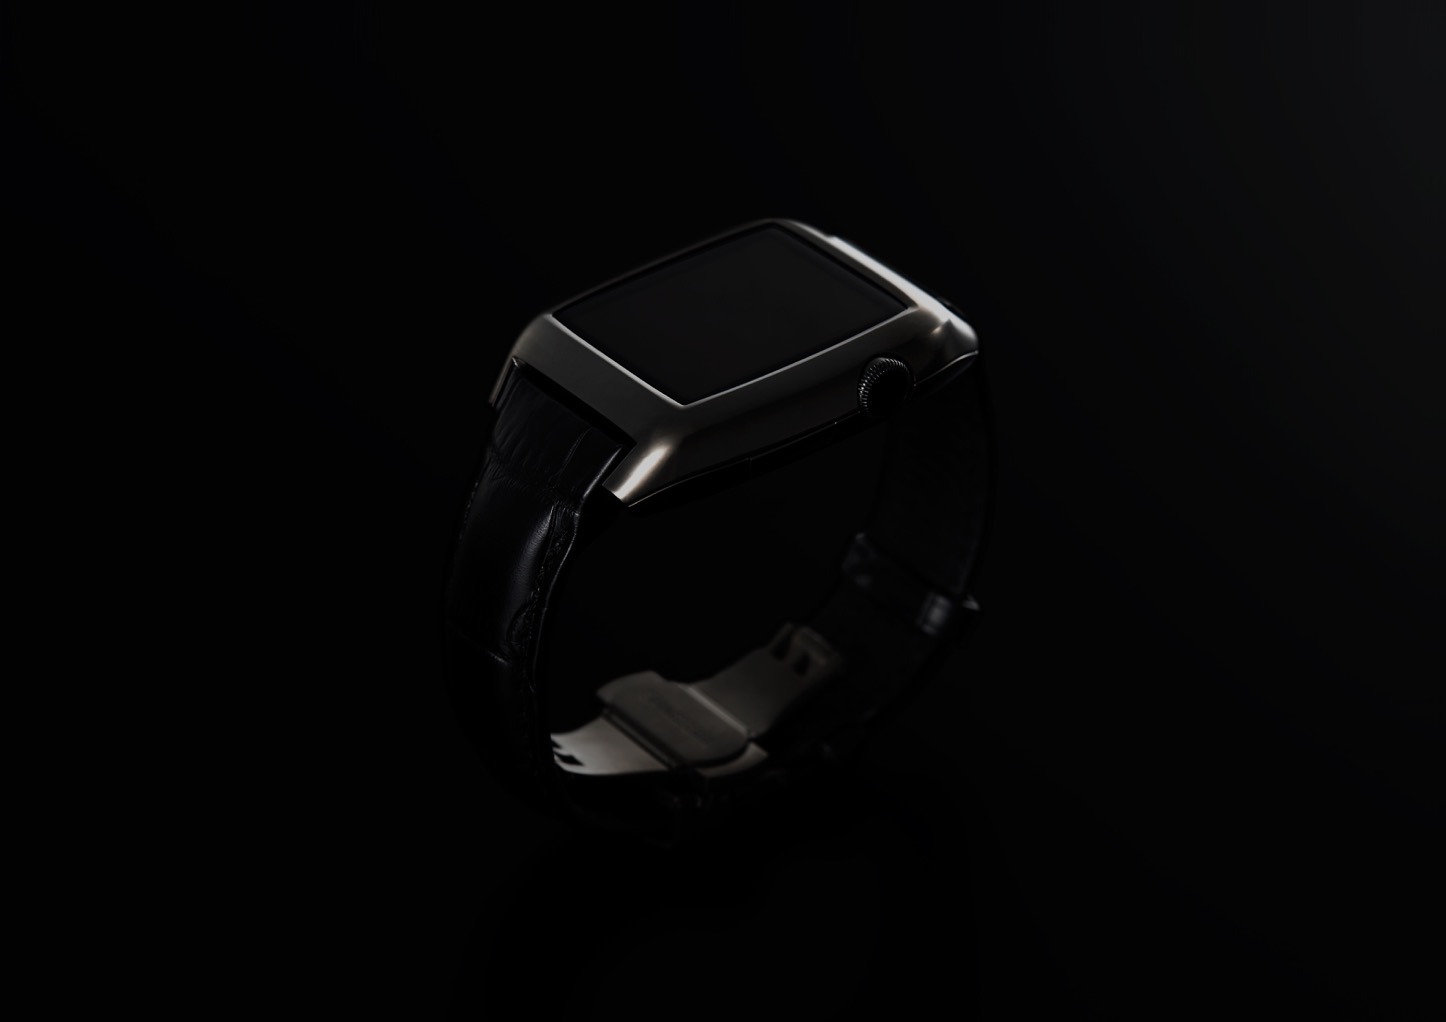 Apple Watch The Watch by SQUAIR